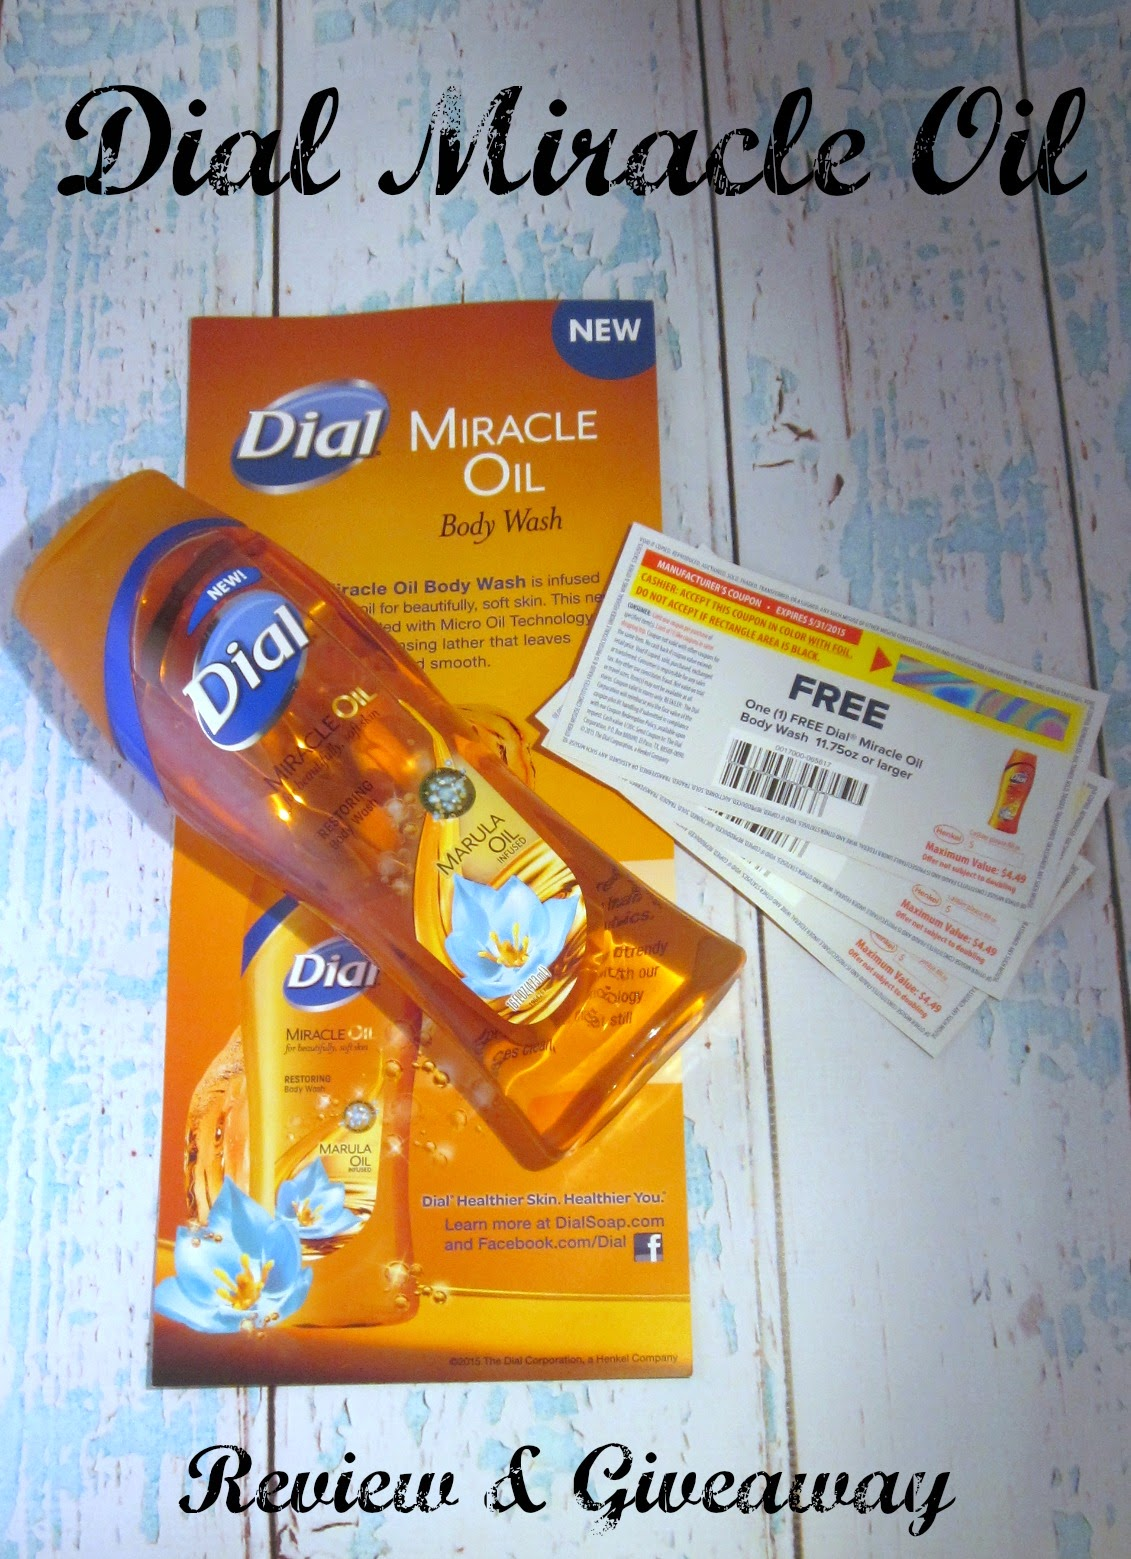 Dial Body Wash Miracle Oil Giveaway